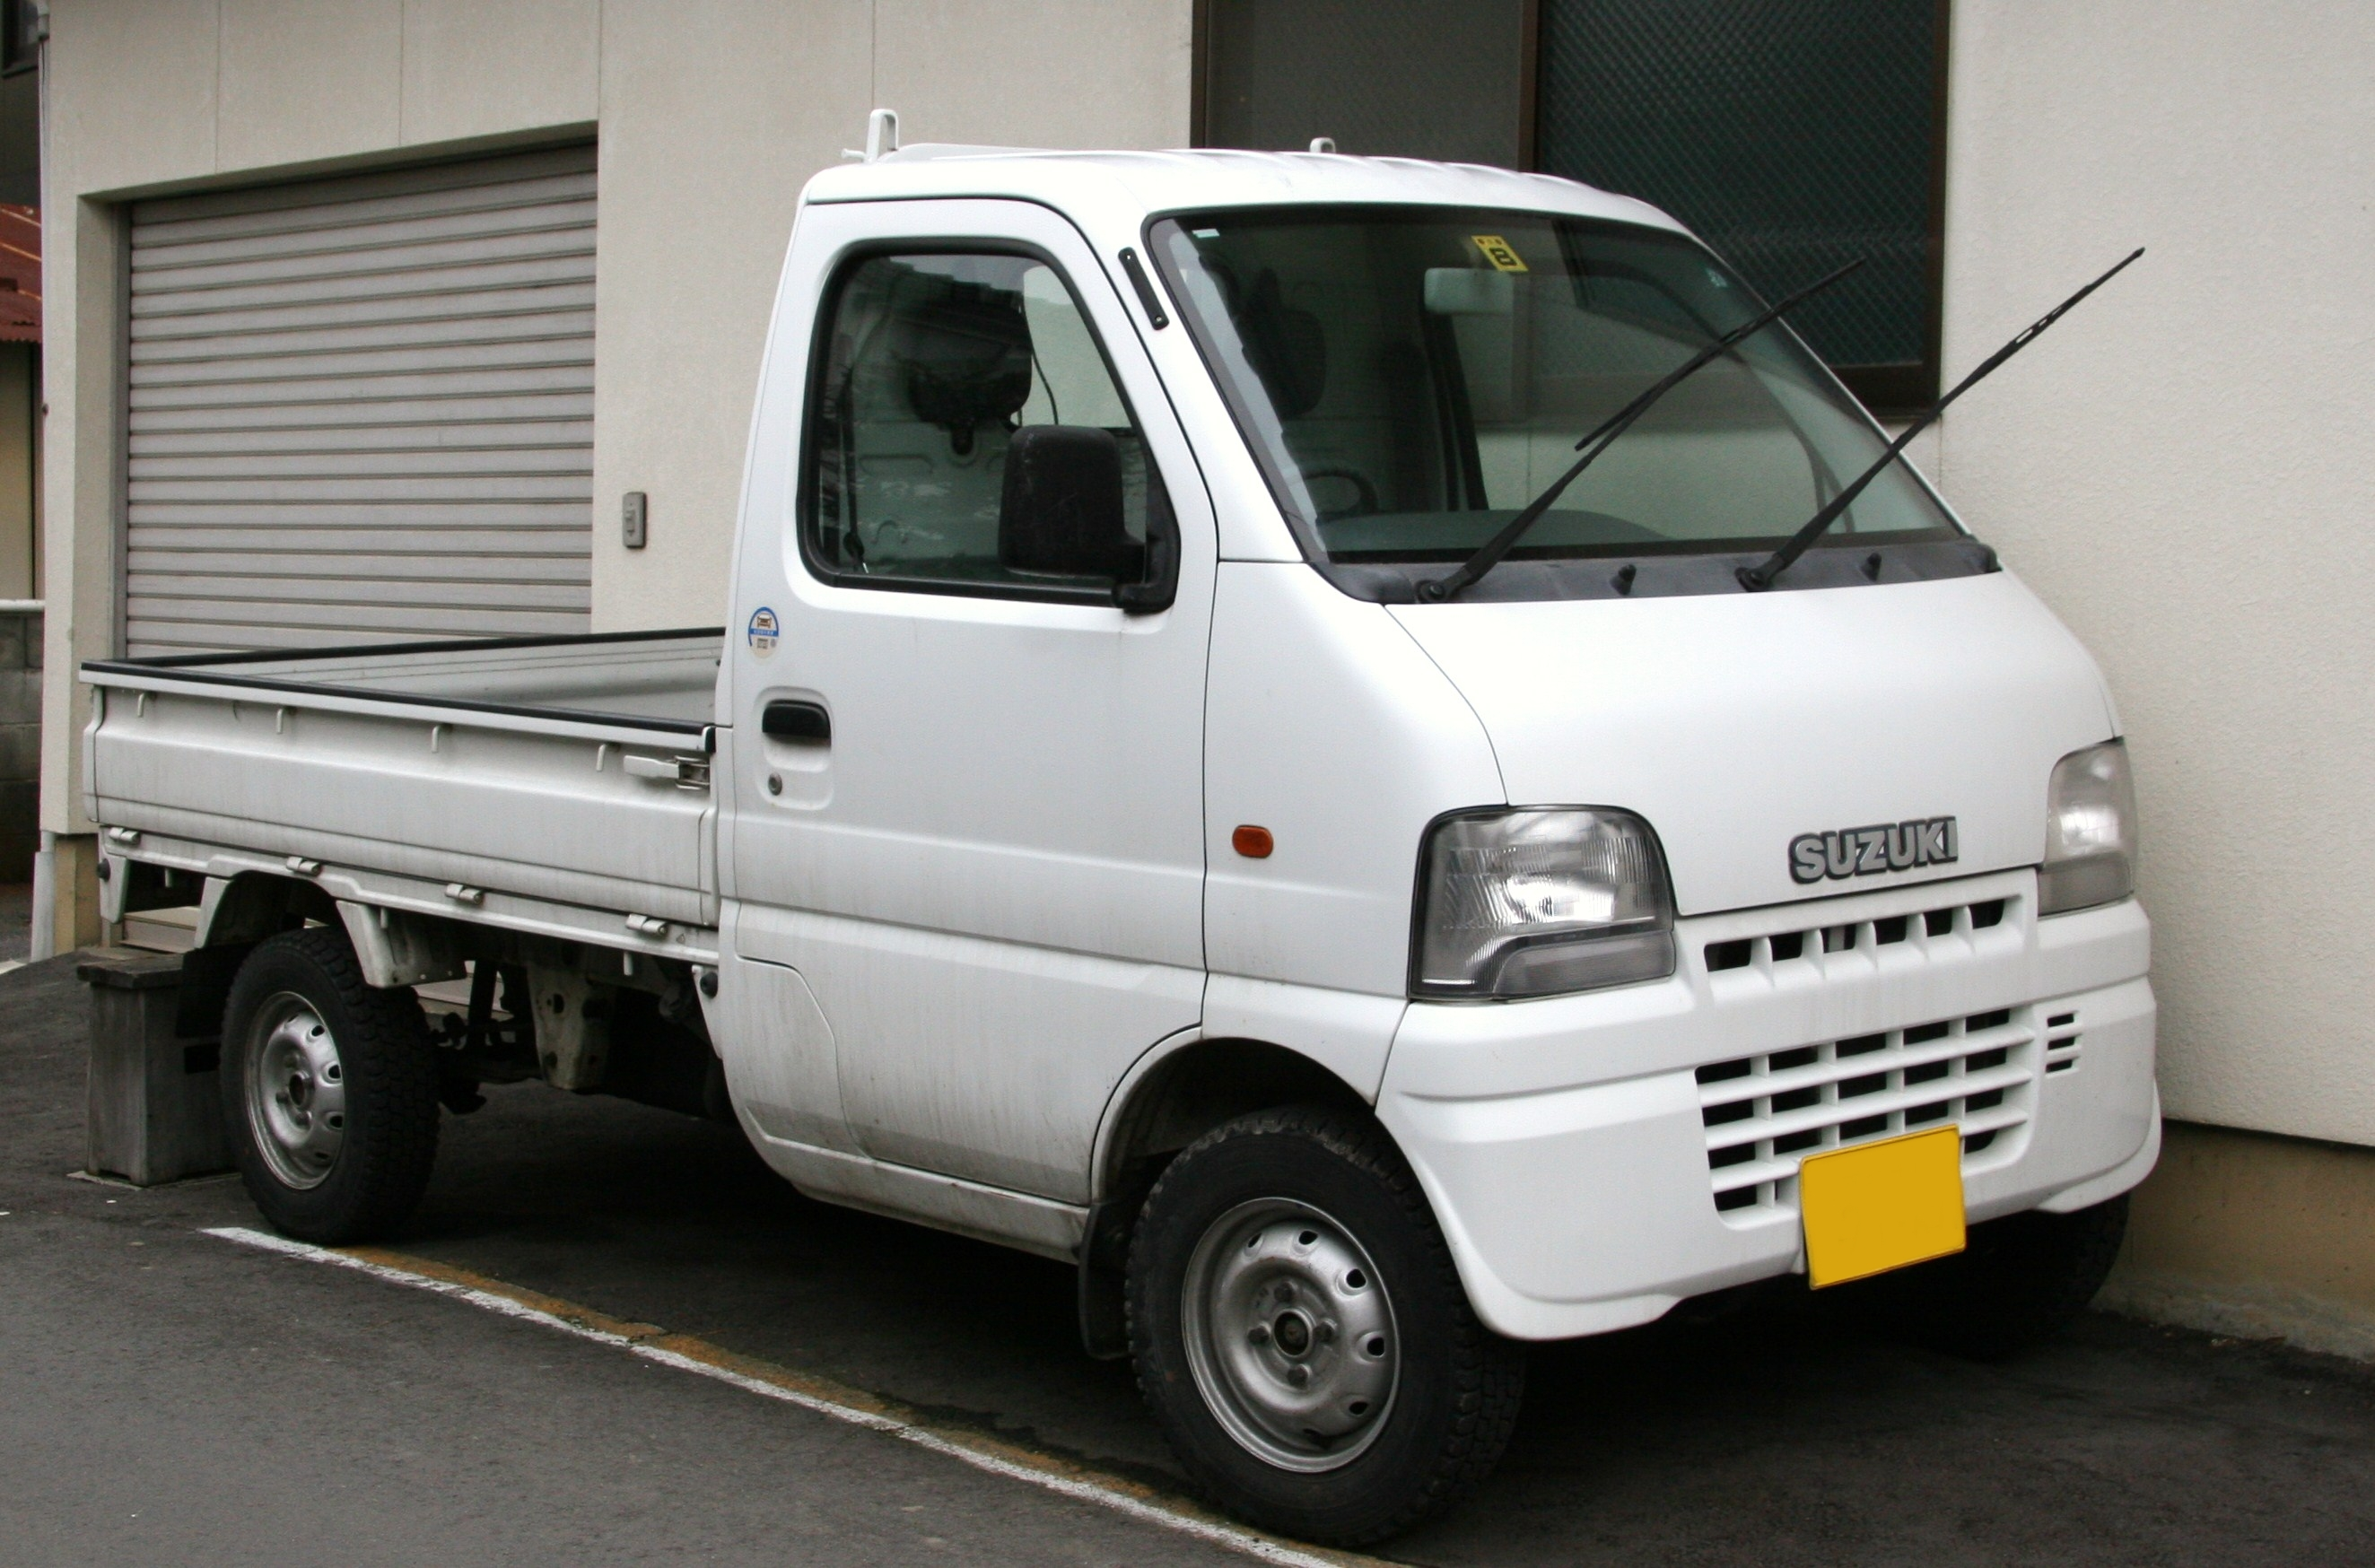 Suzuki Carry Truck Cars For Sale In Myanmar, Found 193